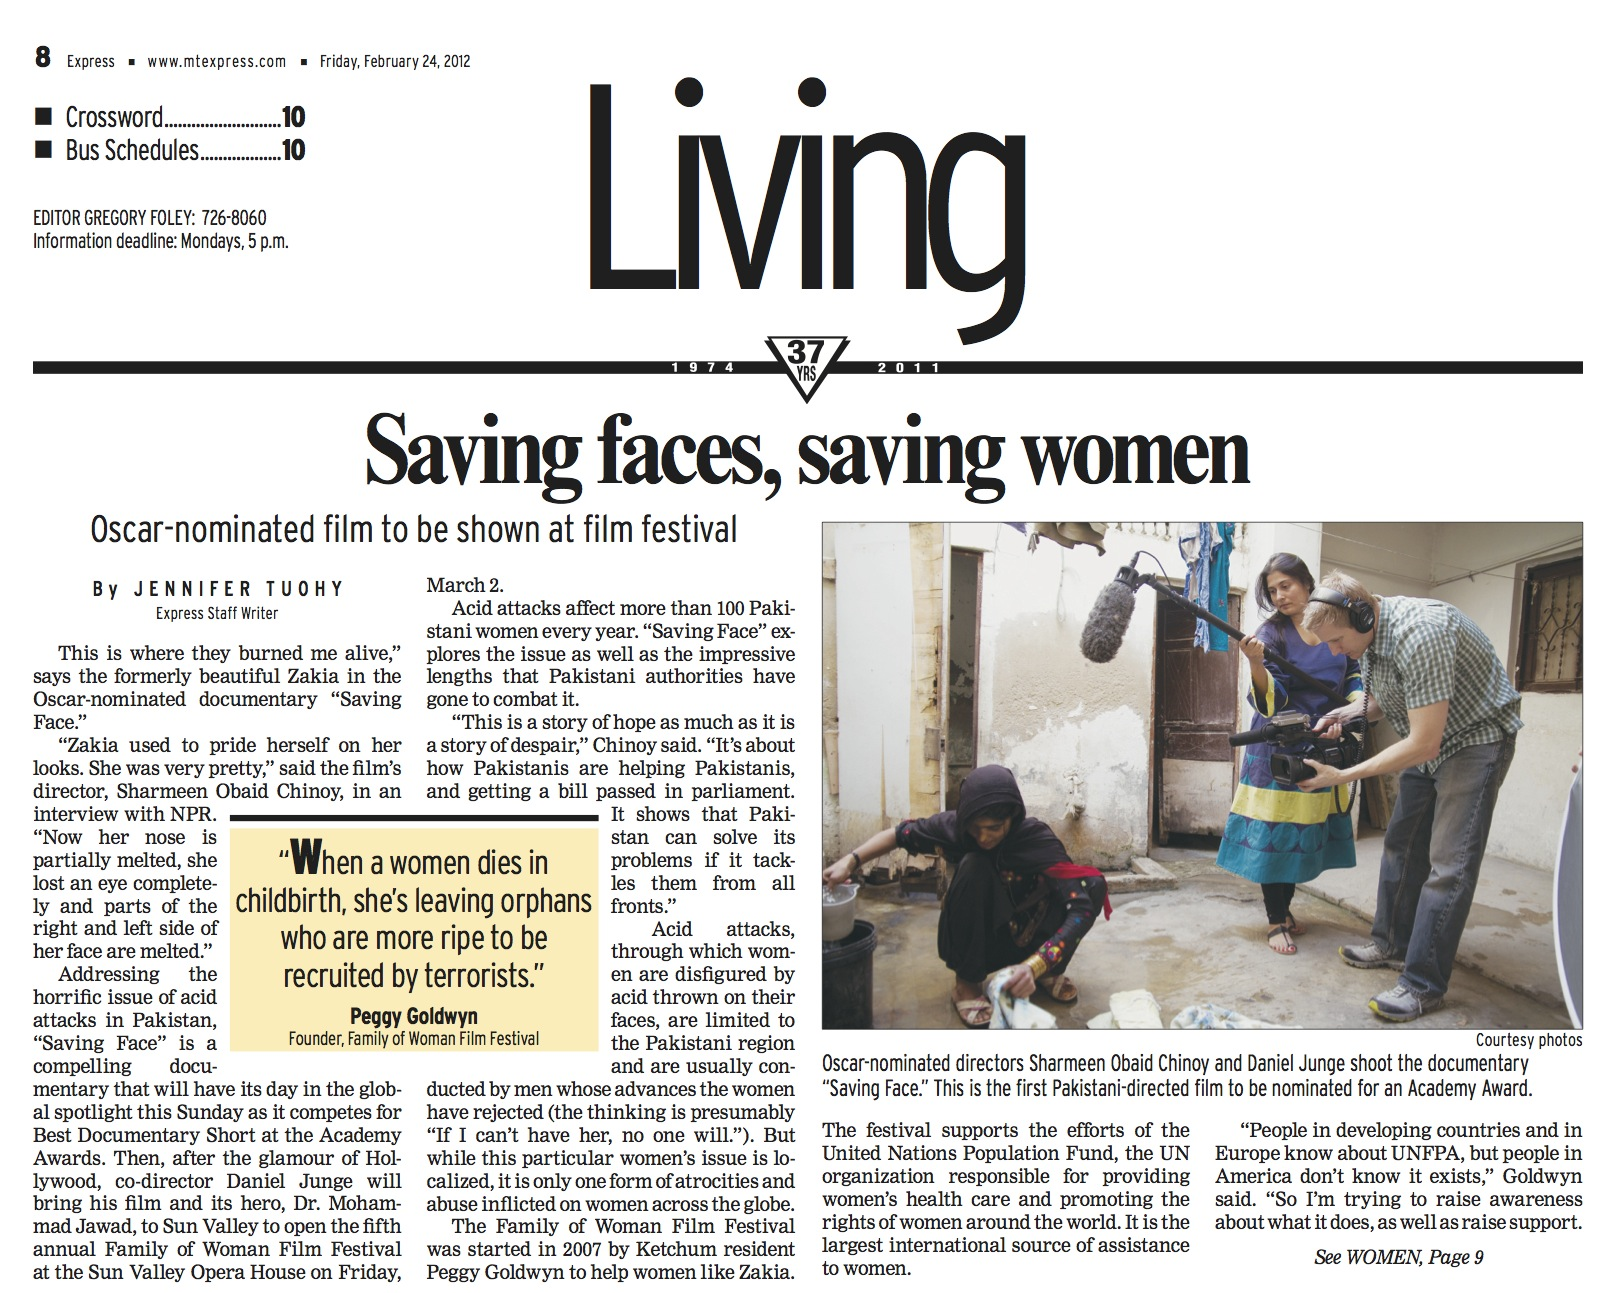 Saving Faces, Saving Women